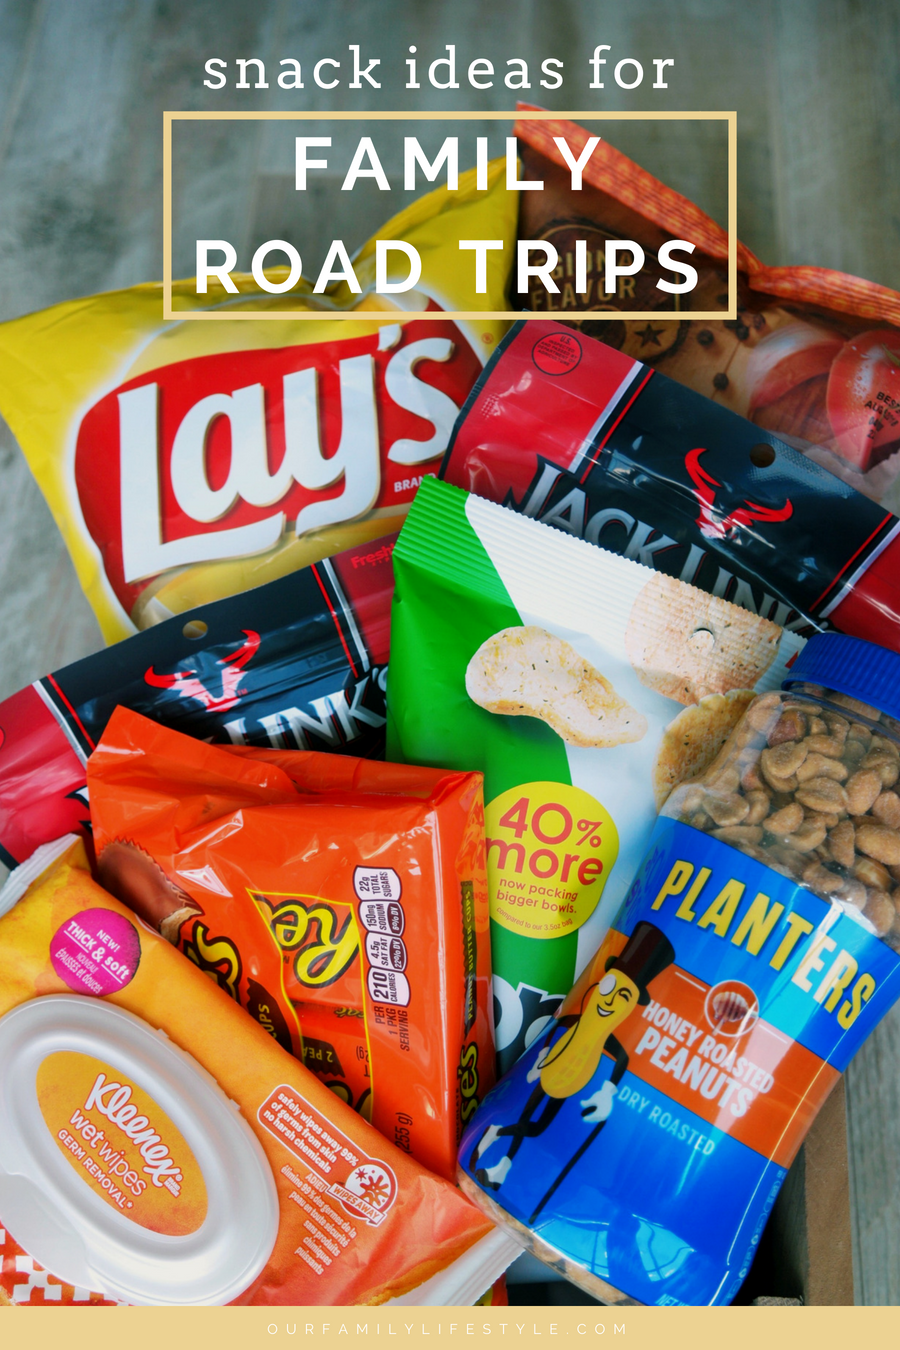 Snacks Ideas for Family Road Trips